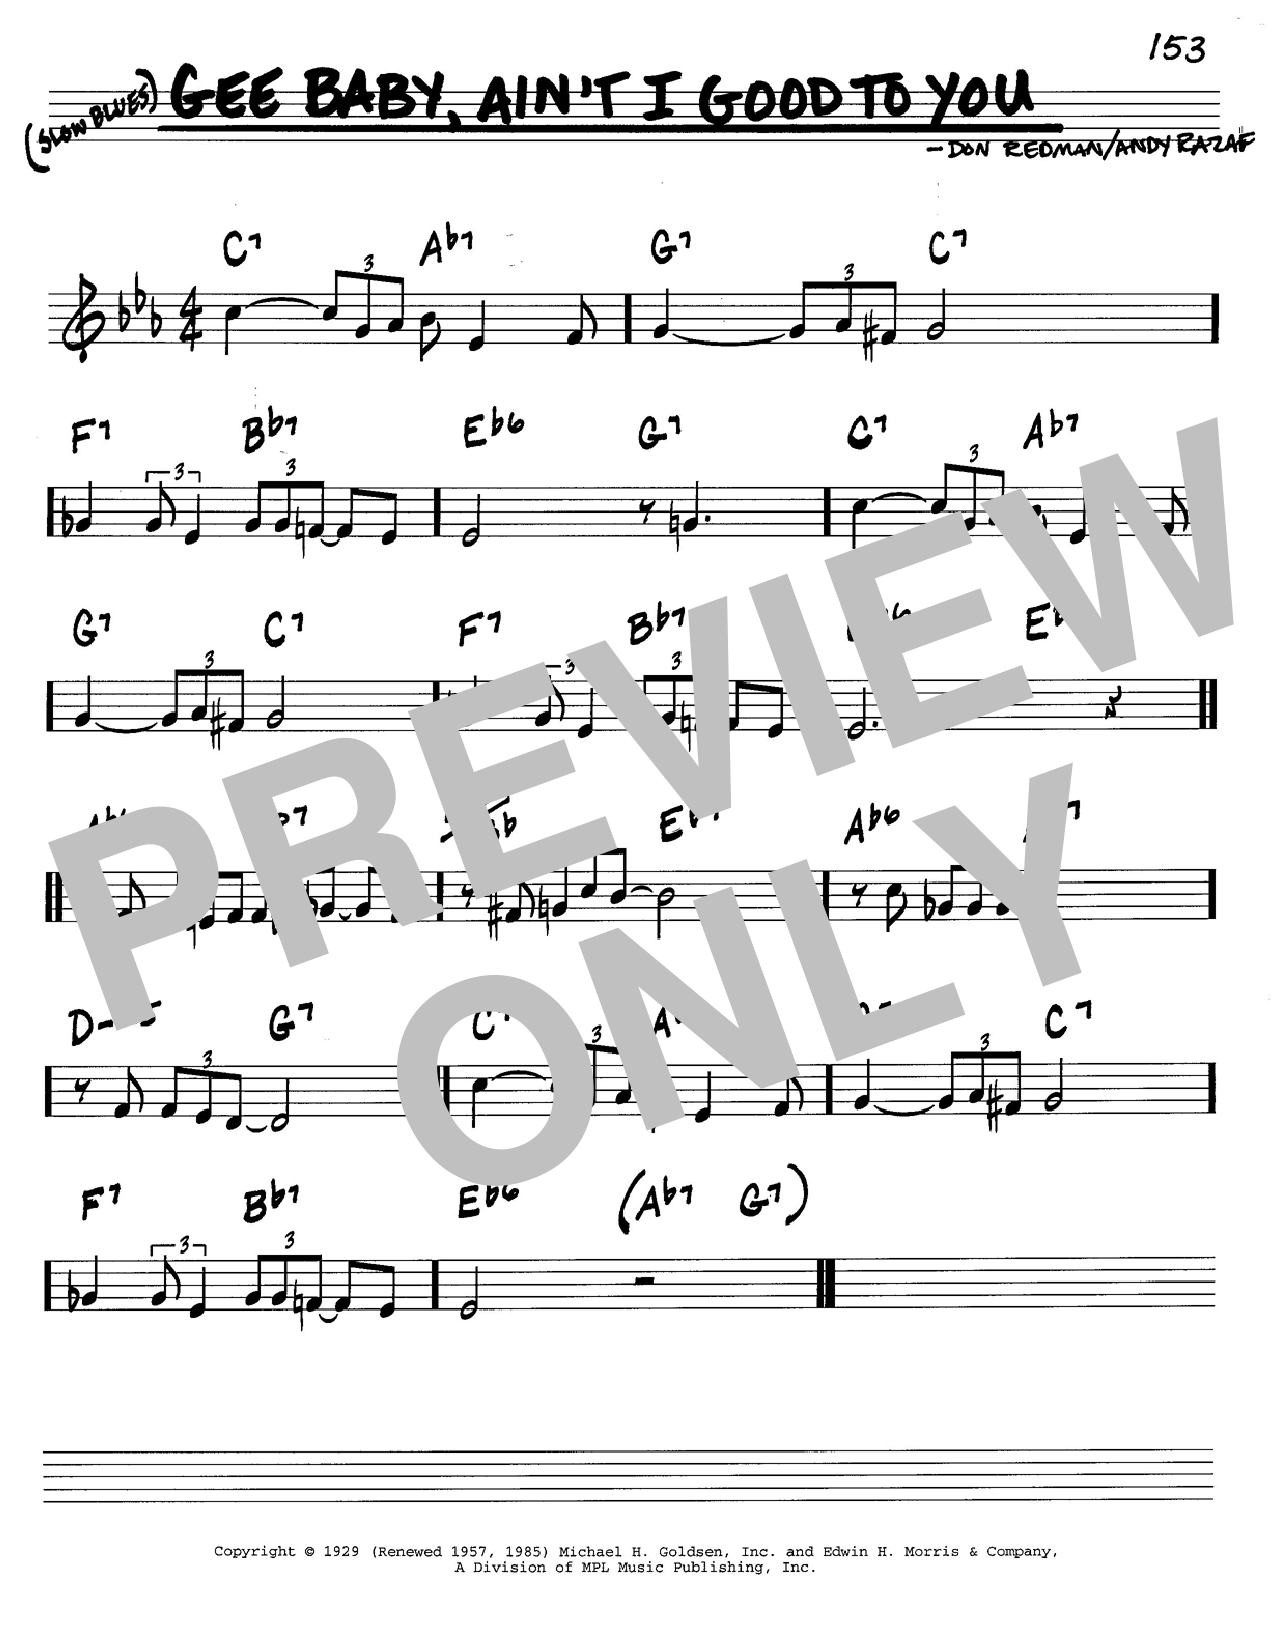 Don Redman Gee Baby, Ain't I Good To You sheet music notes and chords. Download Printable PDF.